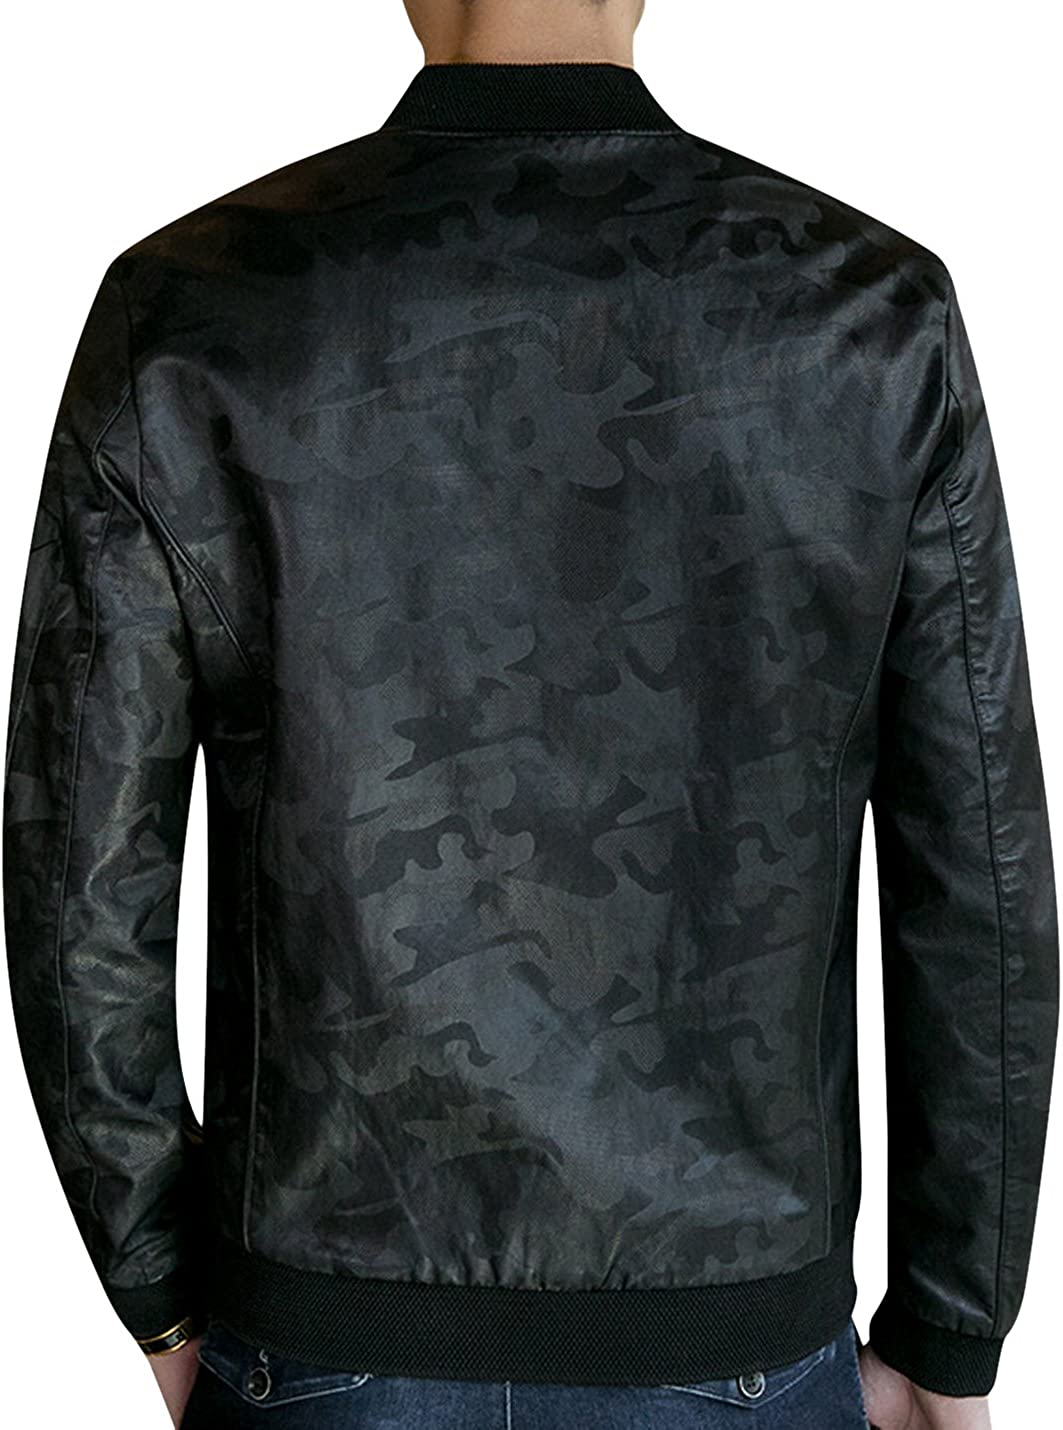 Tanming Mens Camo Print Faux Leather Jacket Outerwear